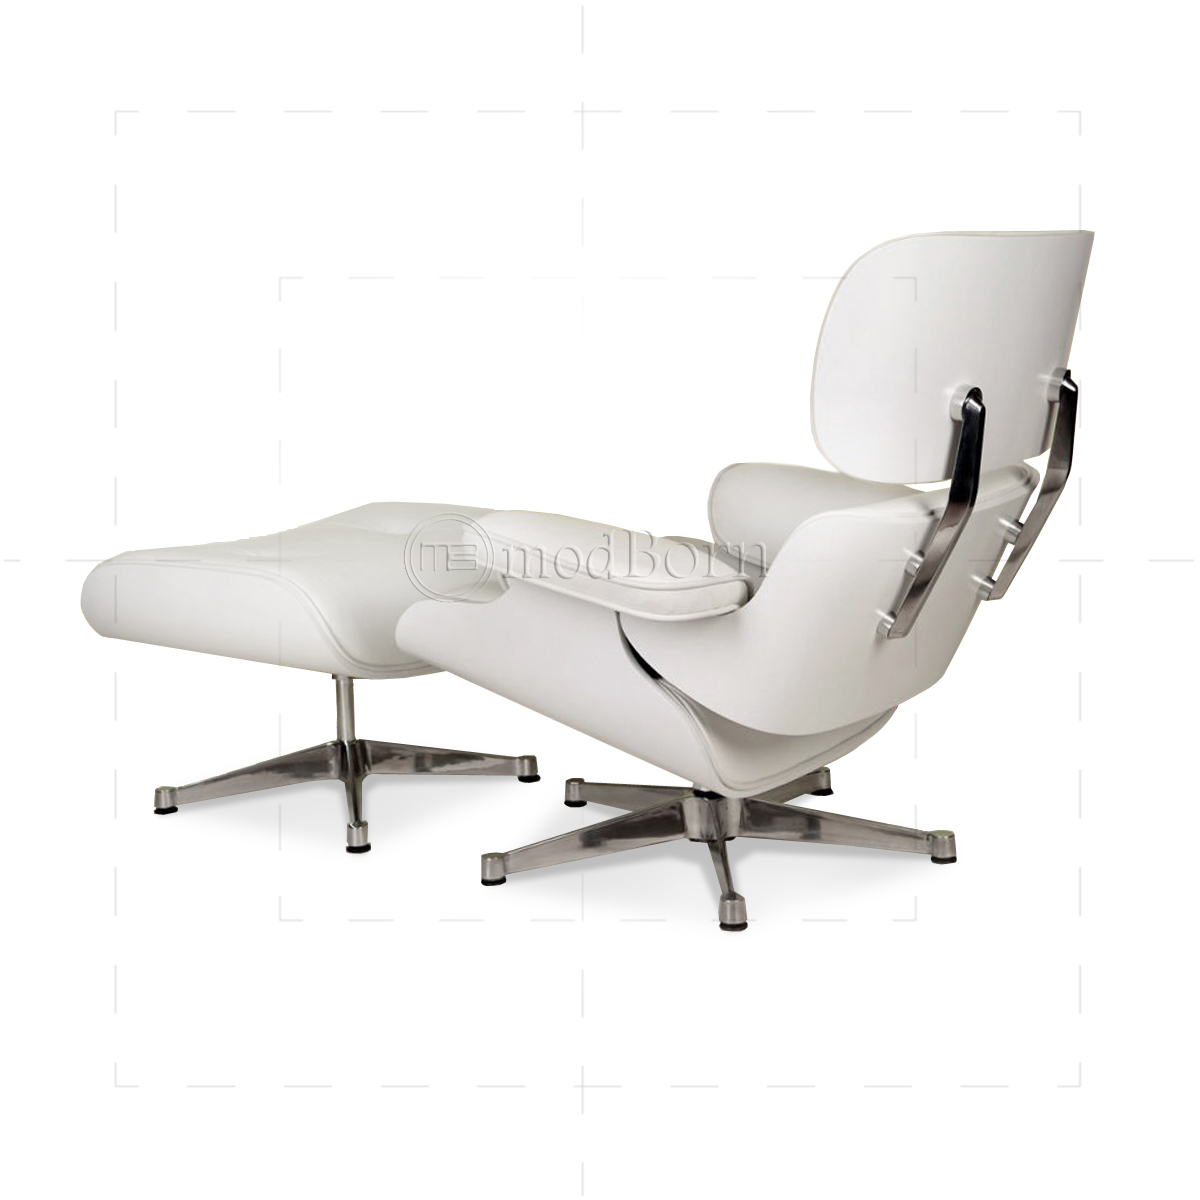 eames style lounge chair and ottoman white leather white wood. Black Bedroom Furniture Sets. Home Design Ideas